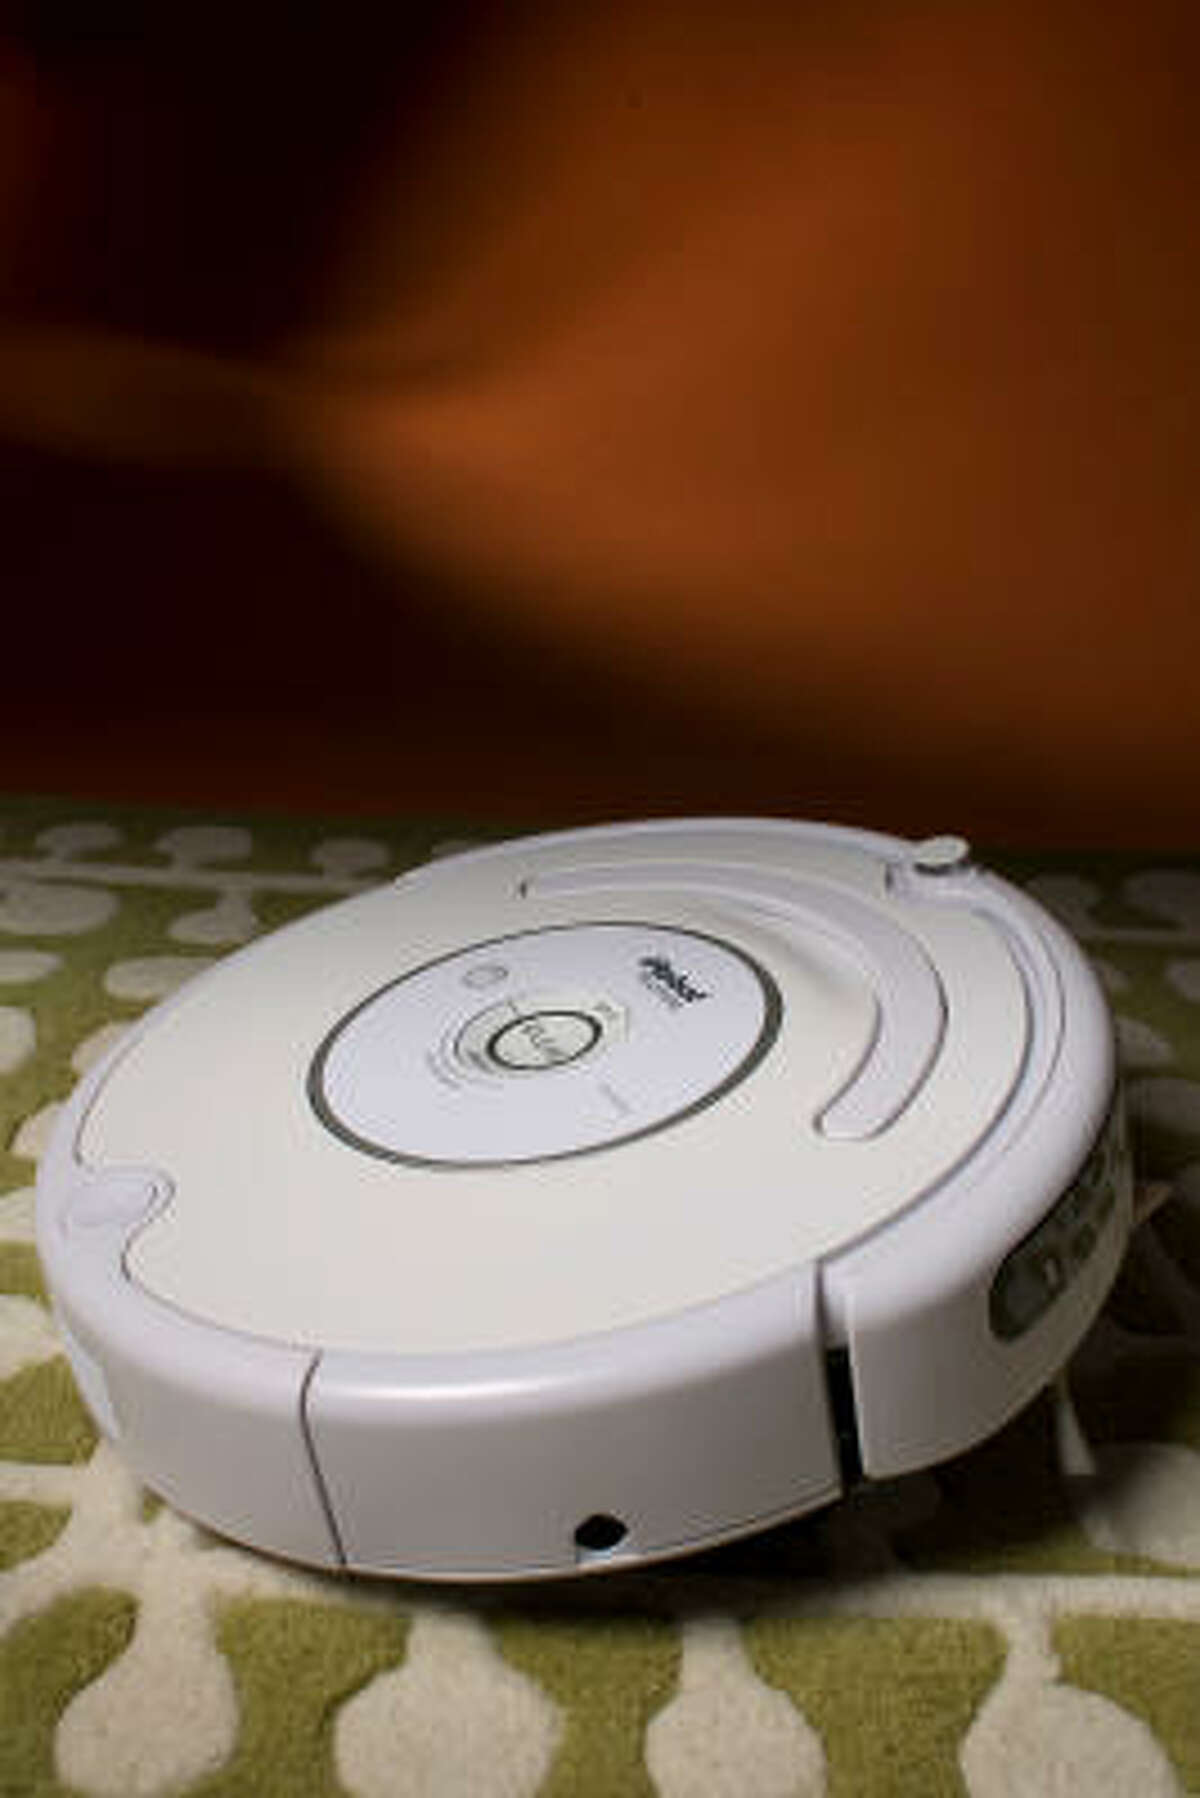 iRobot's Roomba vacuum cleaner can clean floors all by itself.